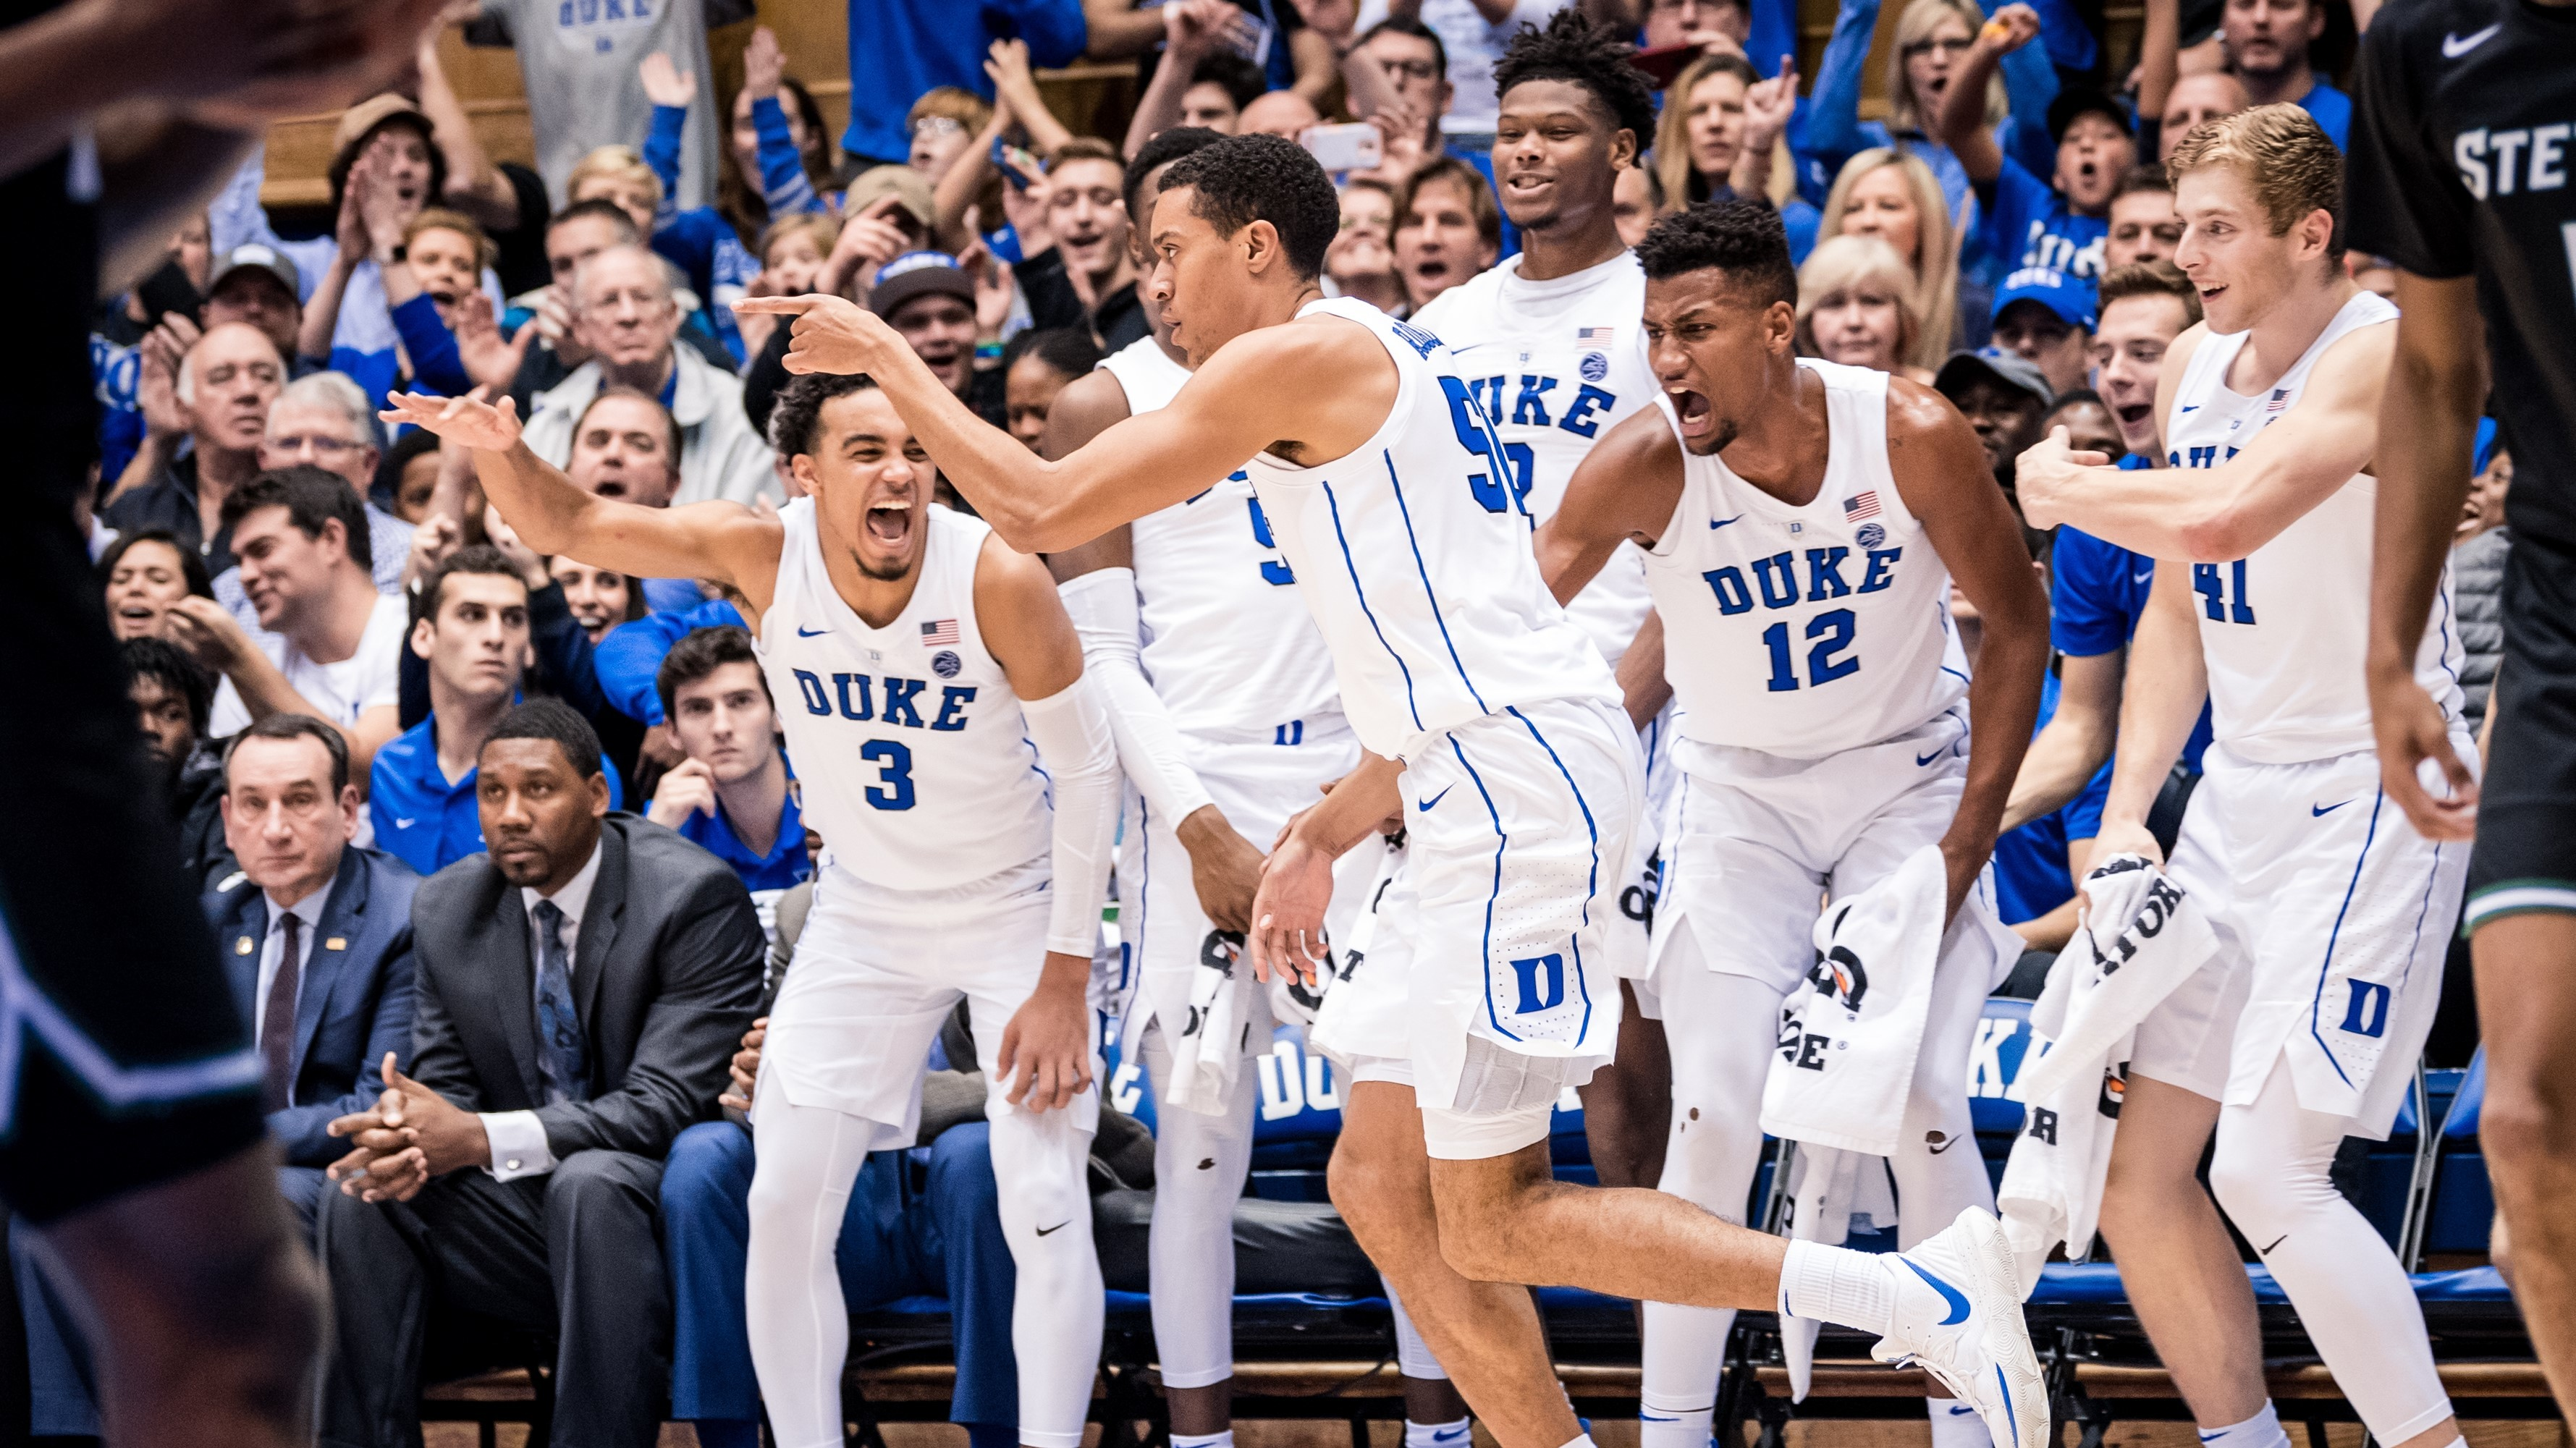 picture about Printable Acc Men's Basketball Schedule named Bracket Mounted for 2019 ACC Mens Basketball Event - Duke